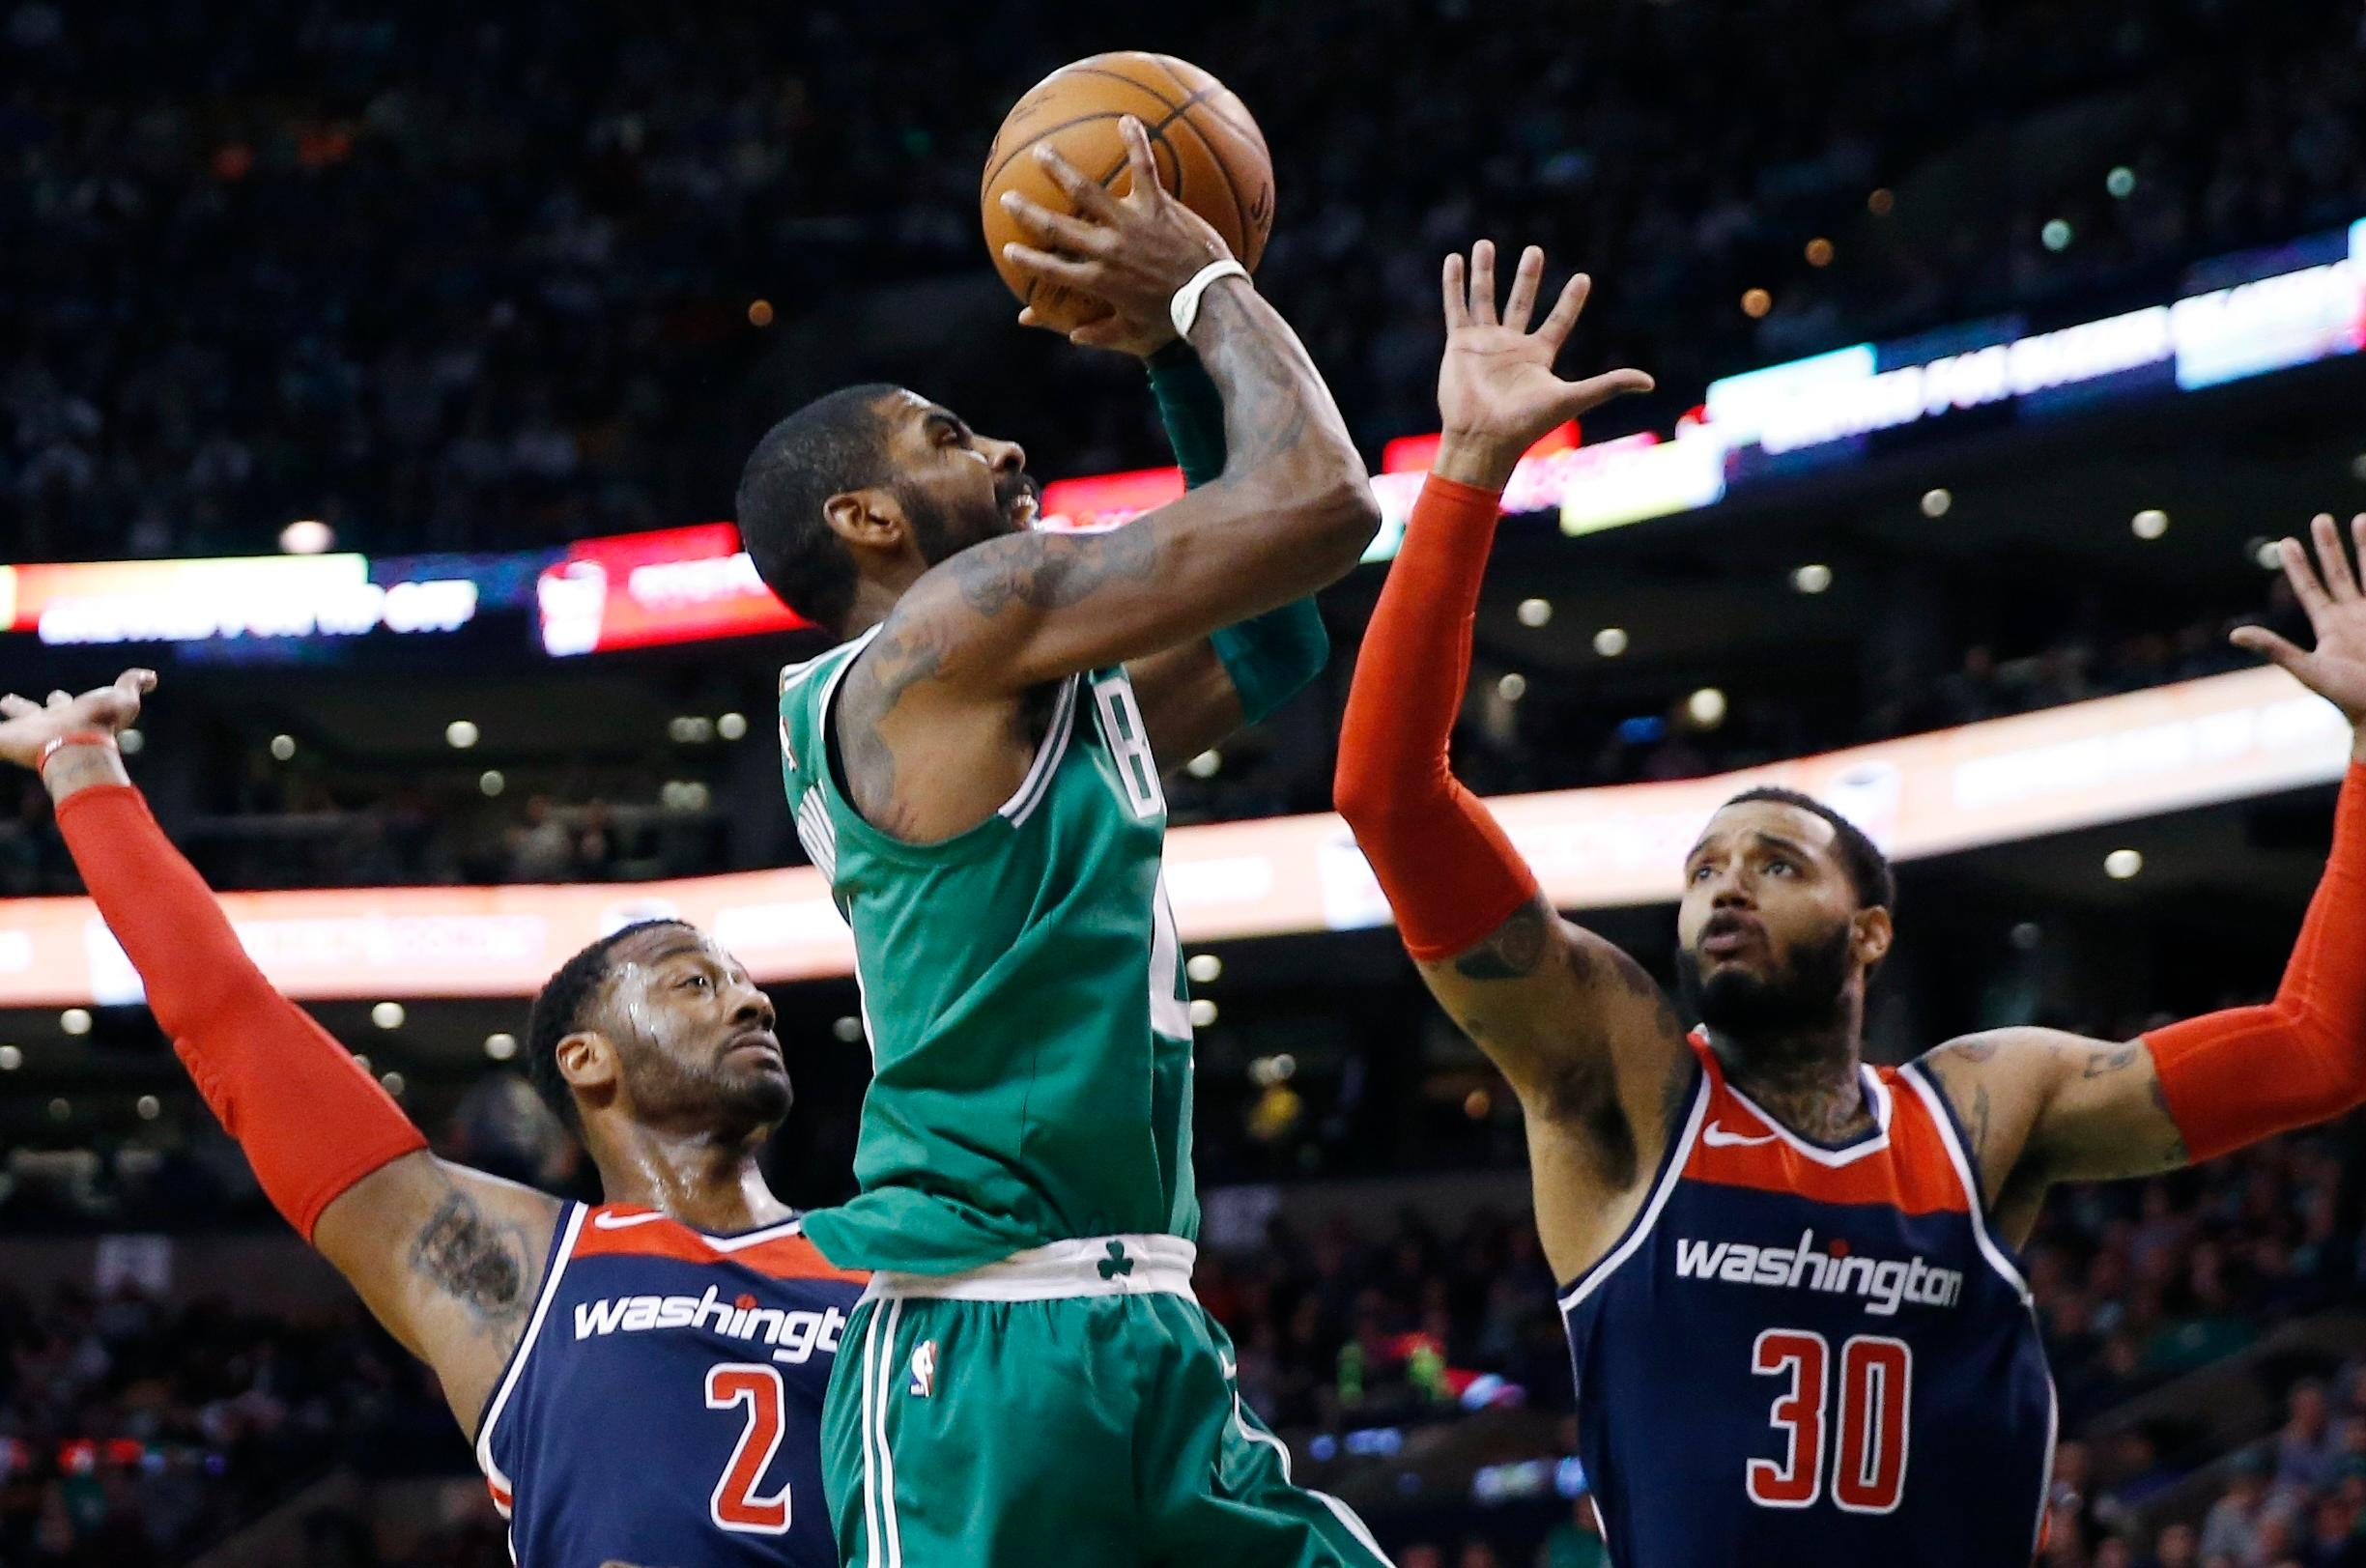 Boston Celtics' Kyrie Irving, center, shoots between Washington Wizards' John Wall (2) and Mike Scott (30) during the first quarter of an NBA basketball game in Boston, Monday, Dec. 25, 2017. (AP Photo/Michael Dwyer)